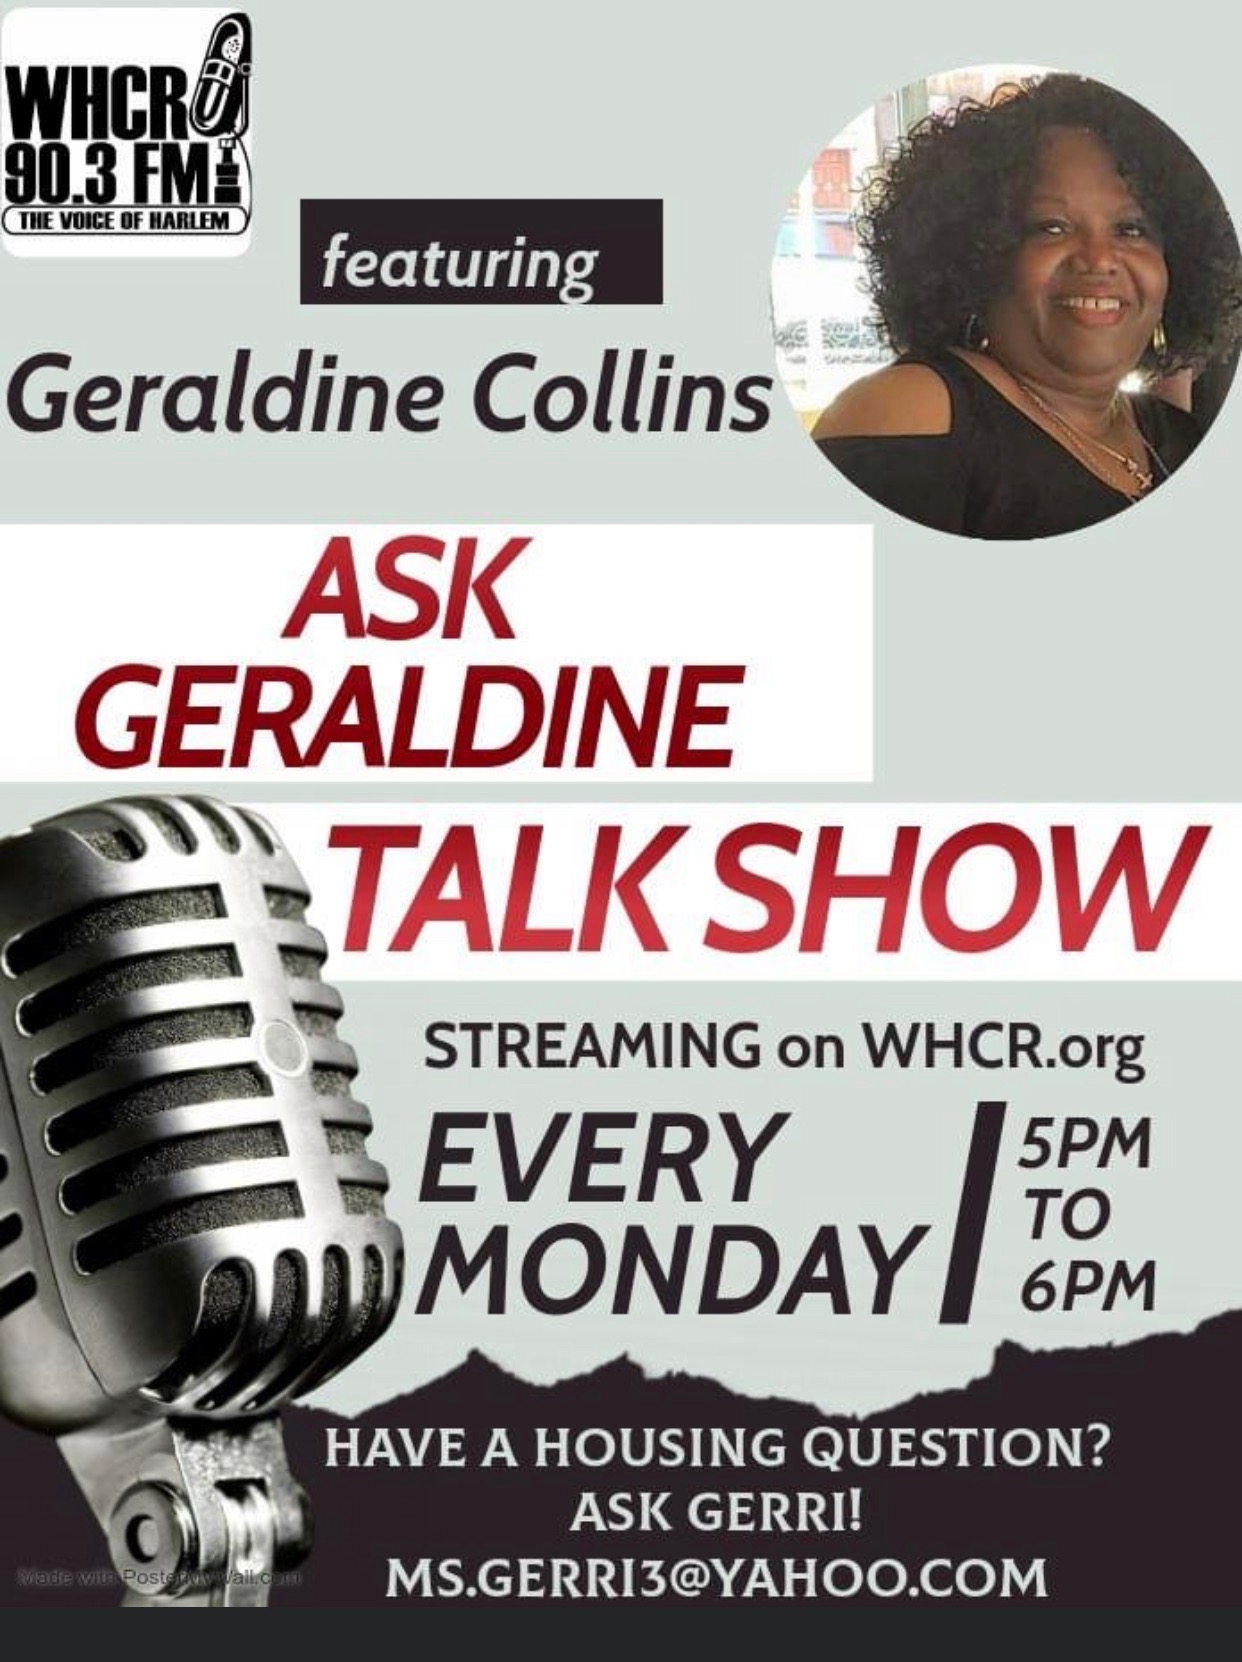 [Ask Geraldine Talk Show streaming on WHCR.org EVery Monday 5pm to 6pm. Have a housing question? Ask Gerri! Ms.Gerri@yahoo.com]